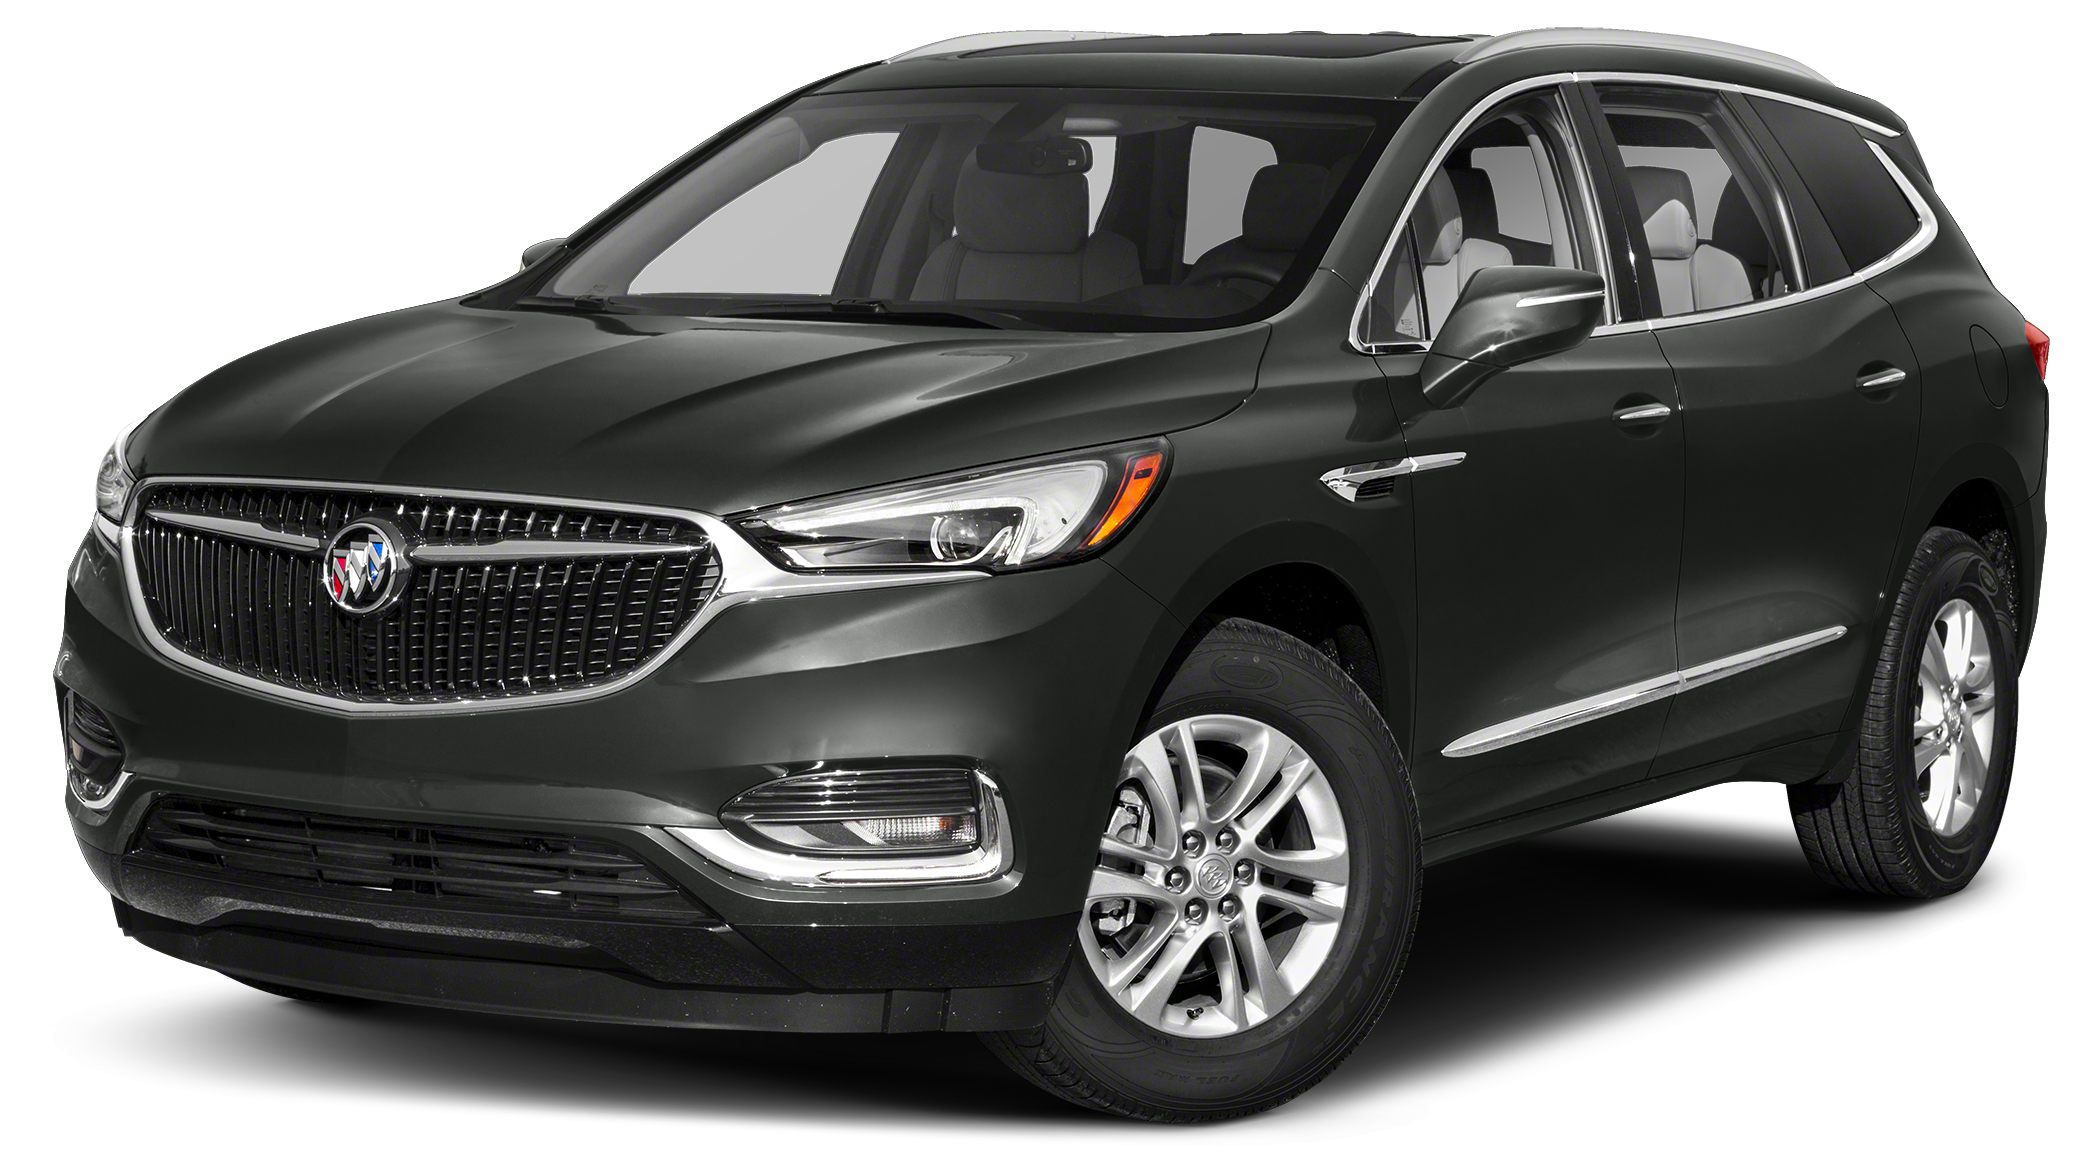 2018 Buick Enclave Premium Make sure to get your hands on this 2018 Buick Enclave Premium with a b